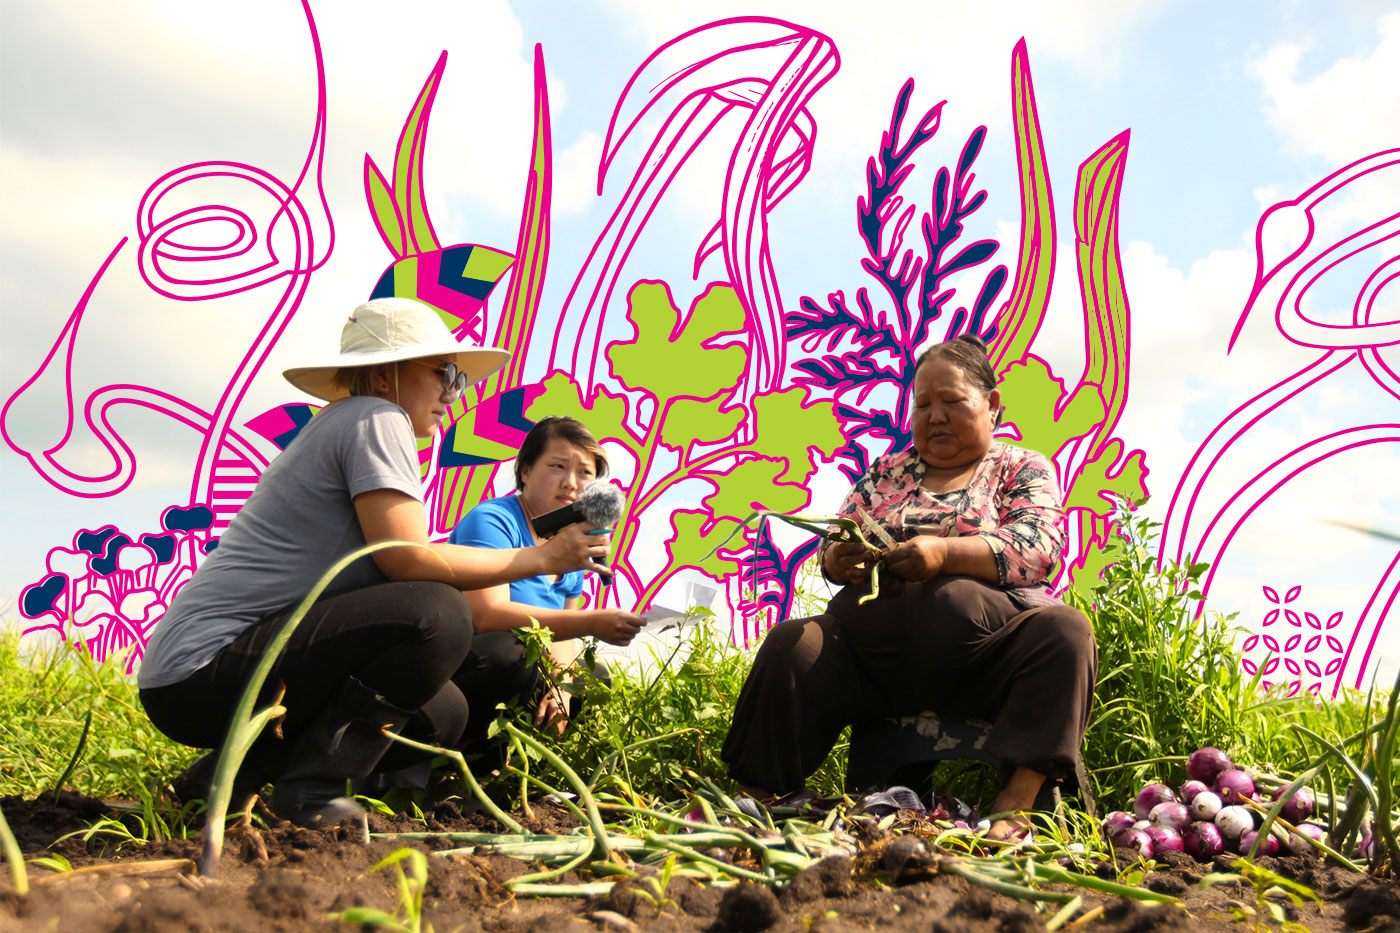 ArtCrop founder, Oskar, and HAFA staff, Yao, interview  Soua Thao , Hmong Farmer on her farm lot, to learn about her story over a summer-long residency held at the  Hmong American Farmers Association  (HAFA) farm. (2017)